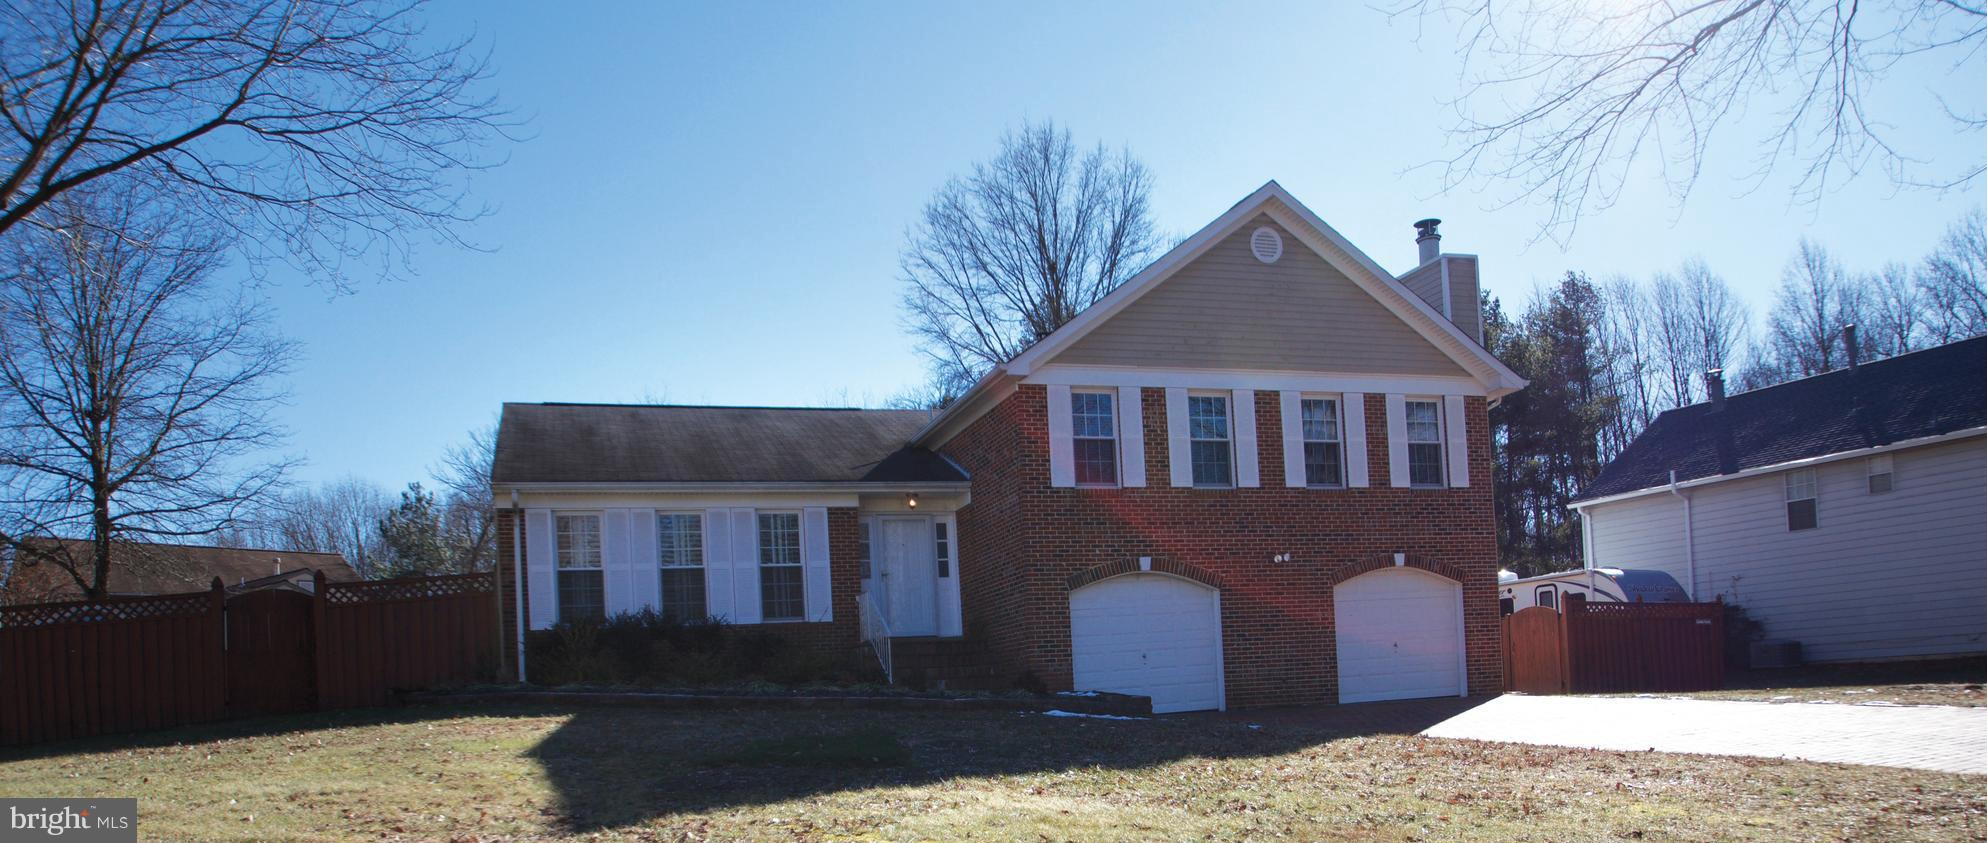 12211 GUINEVERE PLACE, GLENN DALE, MD 20769